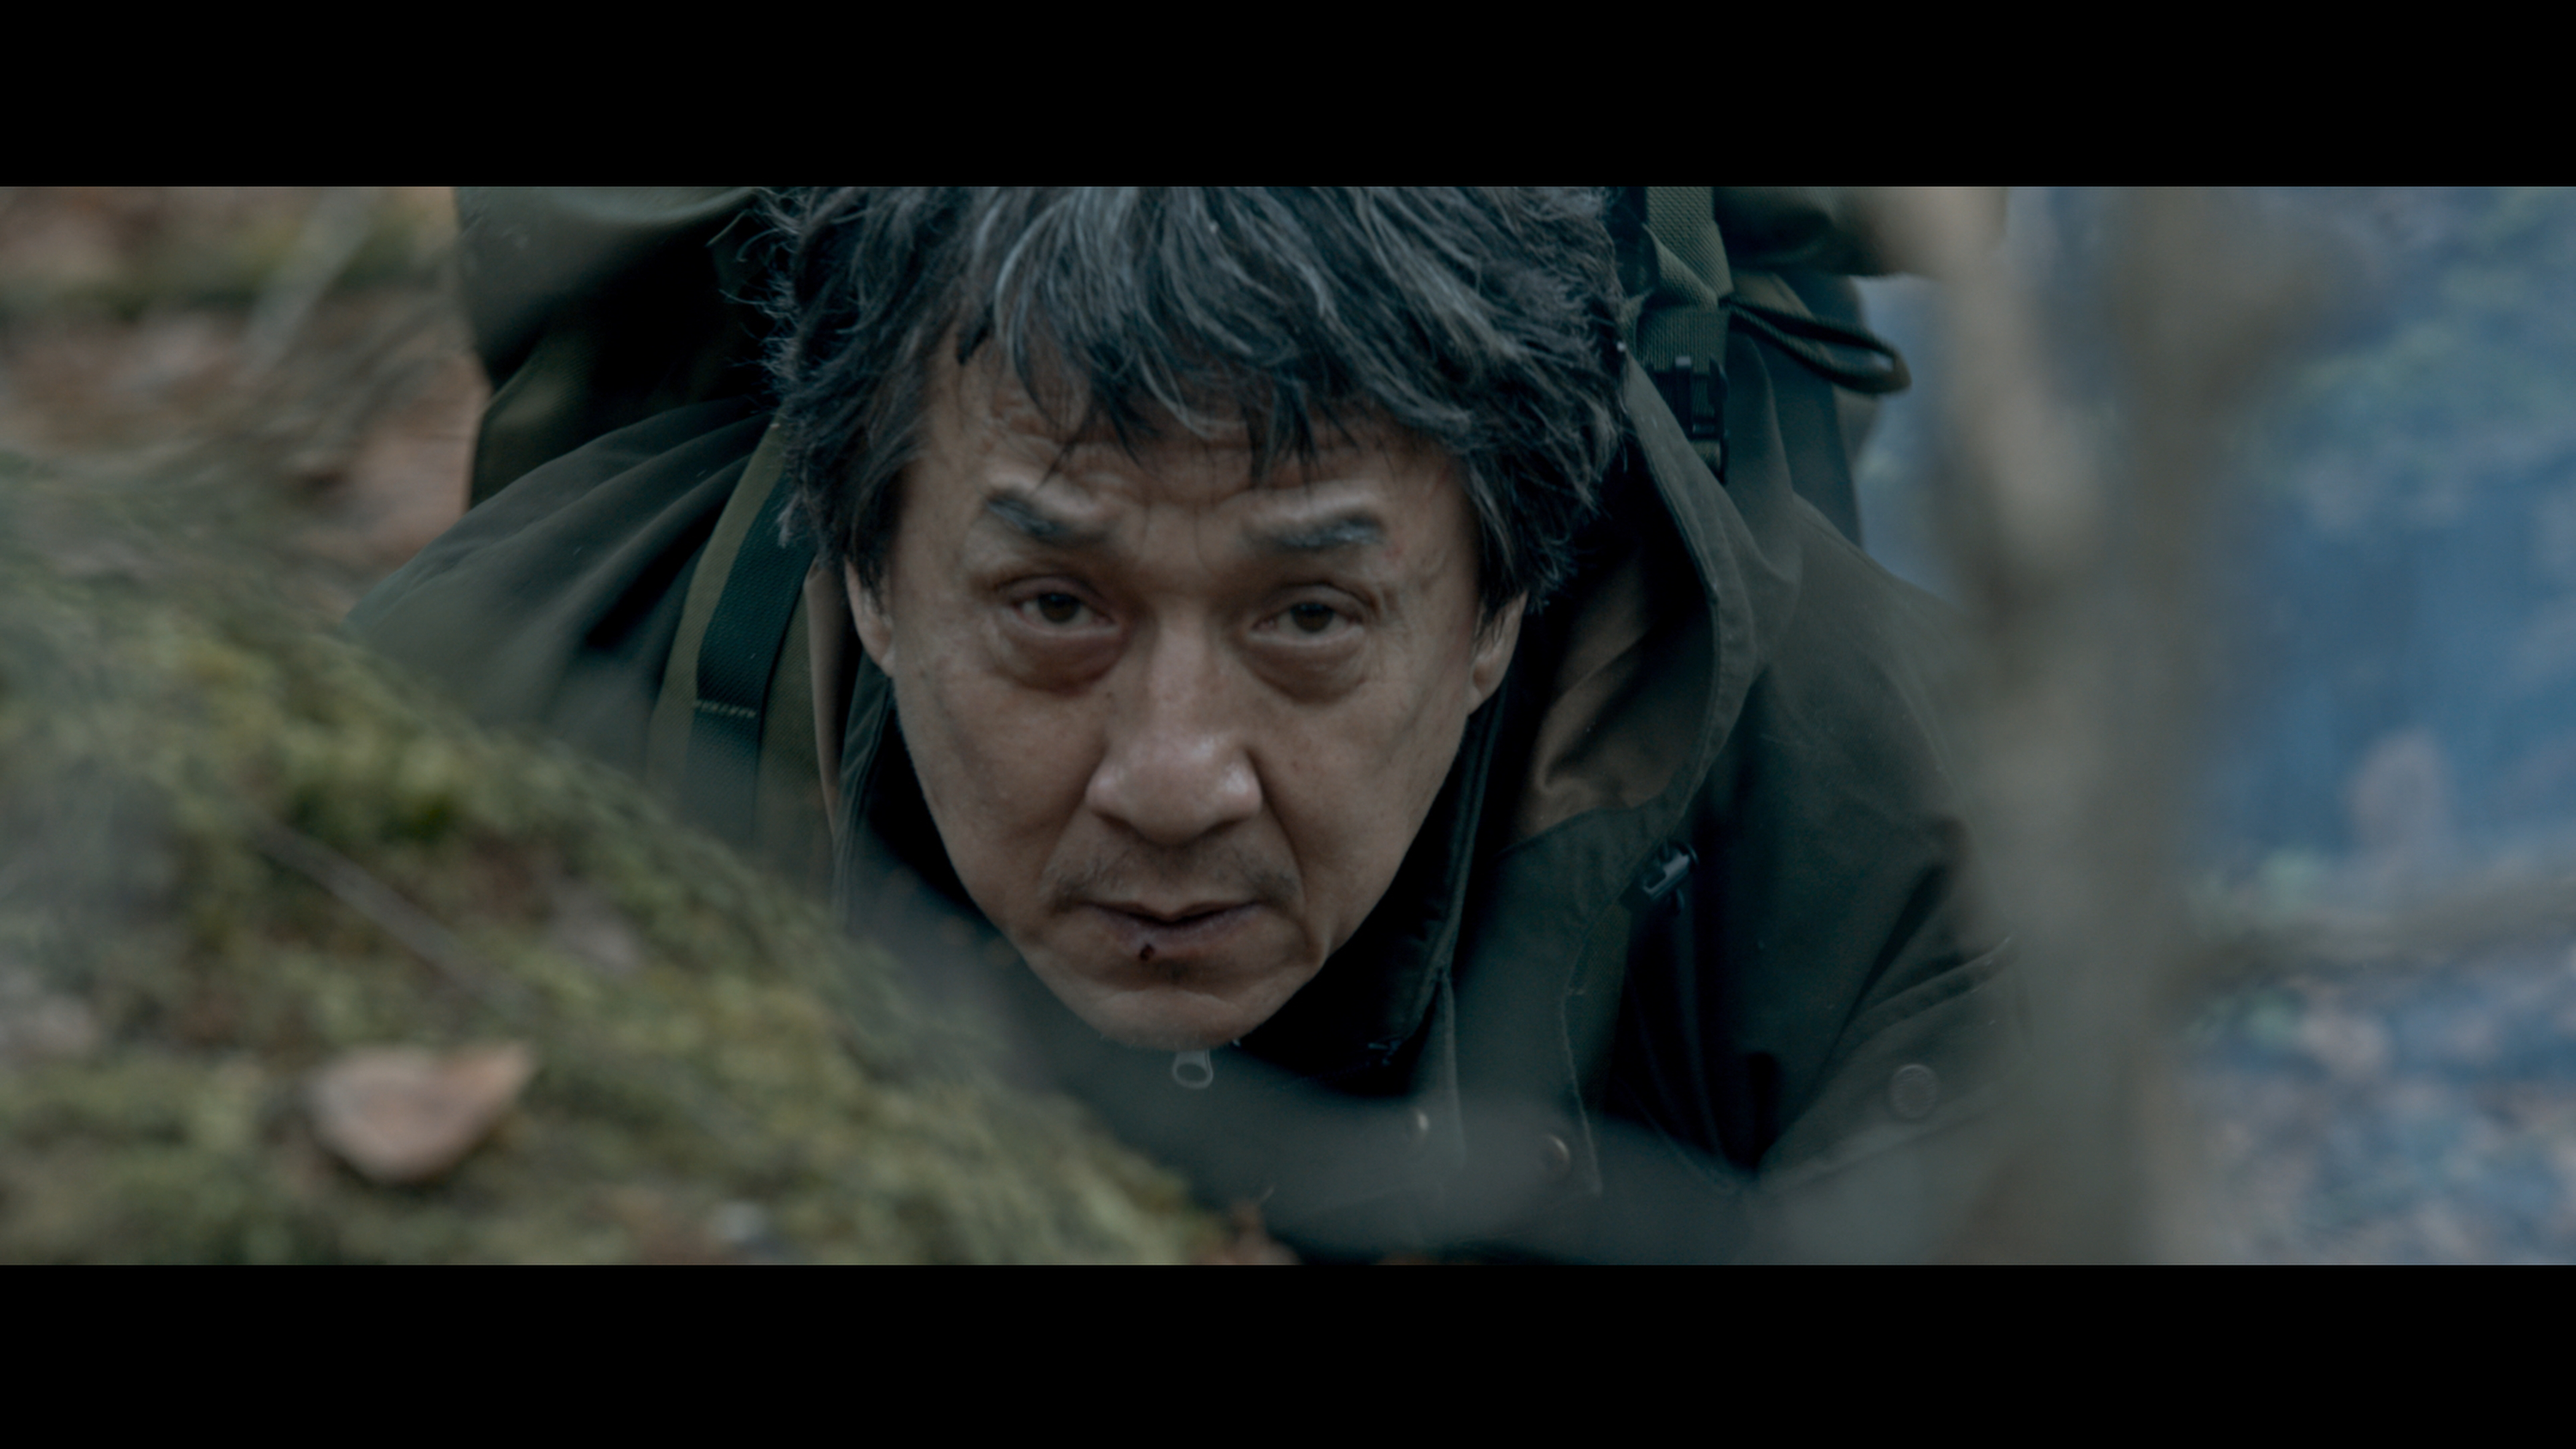 Bikini Royale Trailer peter travers: 'the foreigner' proves jackie chan is still